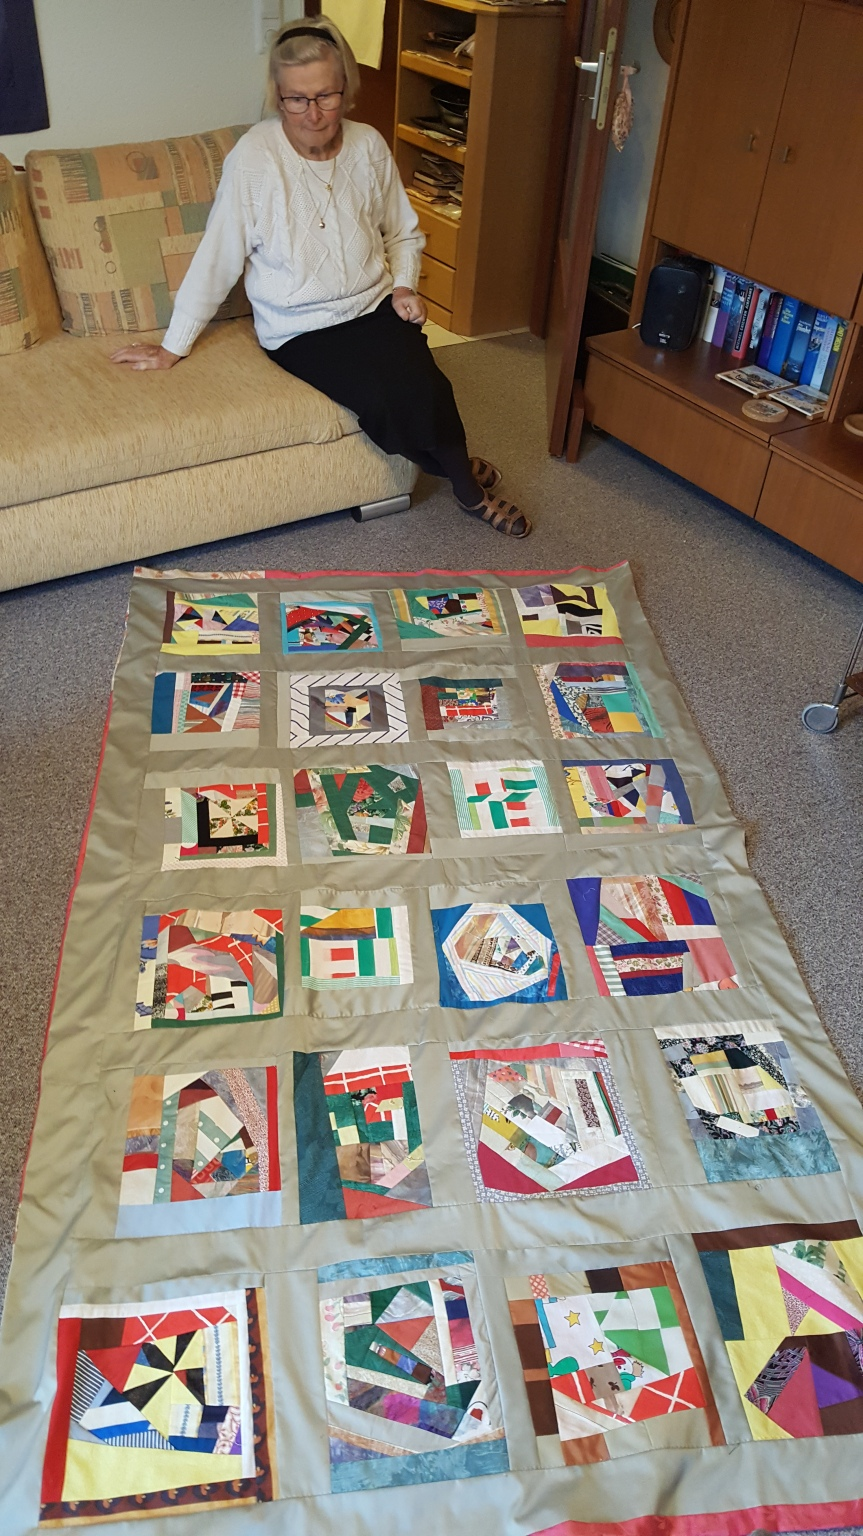 Christa is a wonderful quilter. This is a gift she made for her friend. Photo by Dragonfly Leathrum